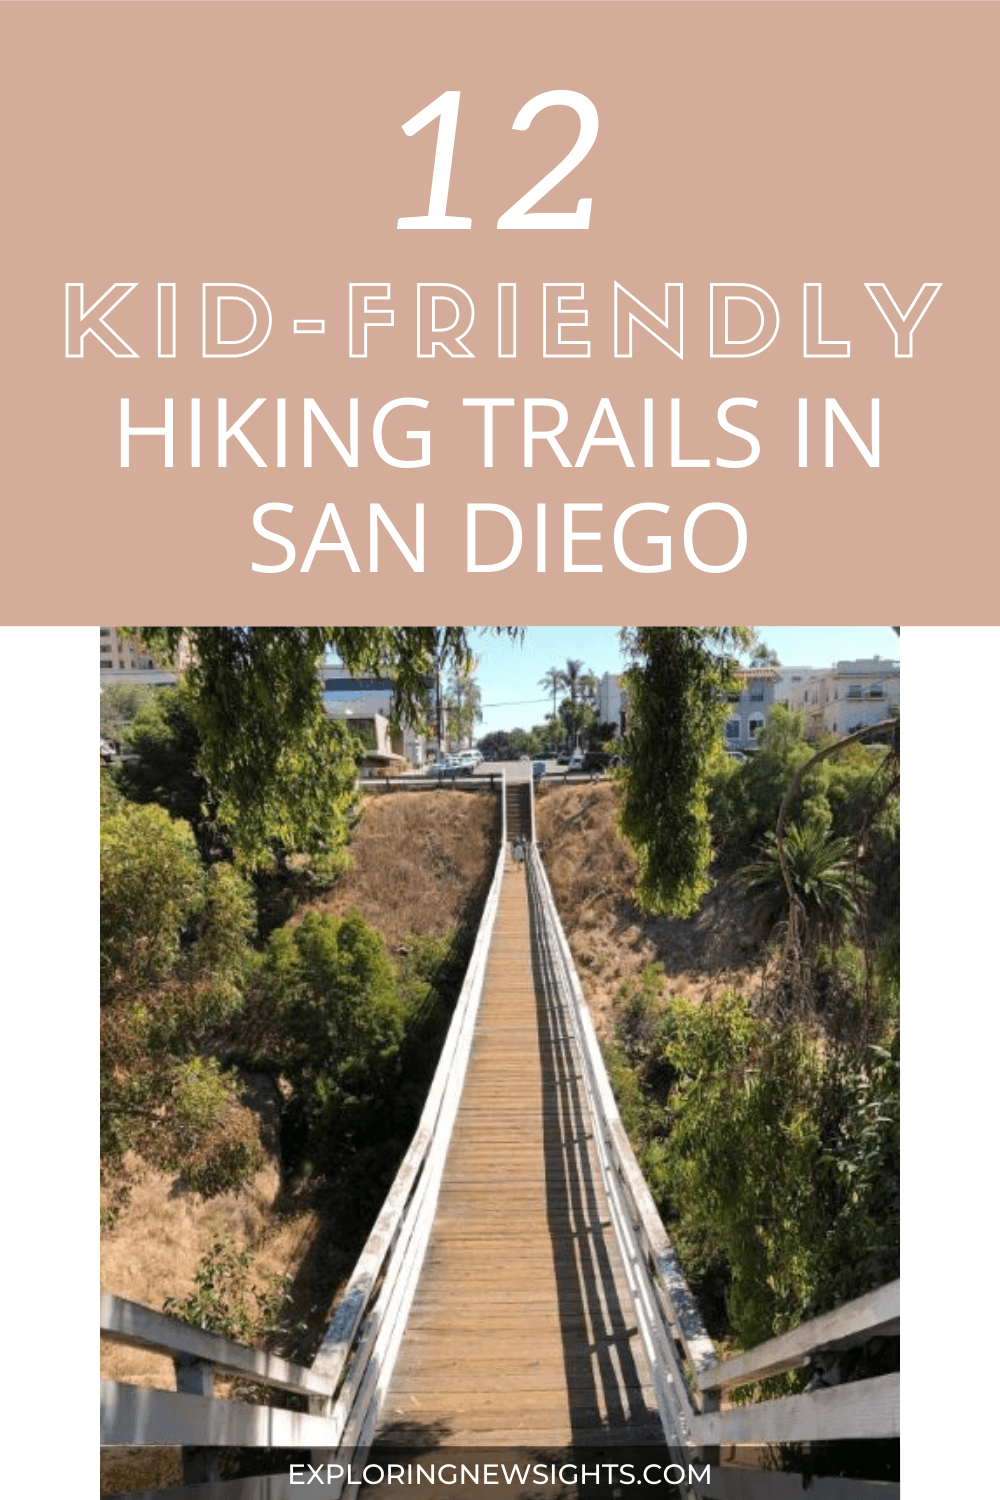 12 of the Best Hiking trails in san diego for families 1 - 12 of the Best Kid-Friendly Hiking Trails in San Diego